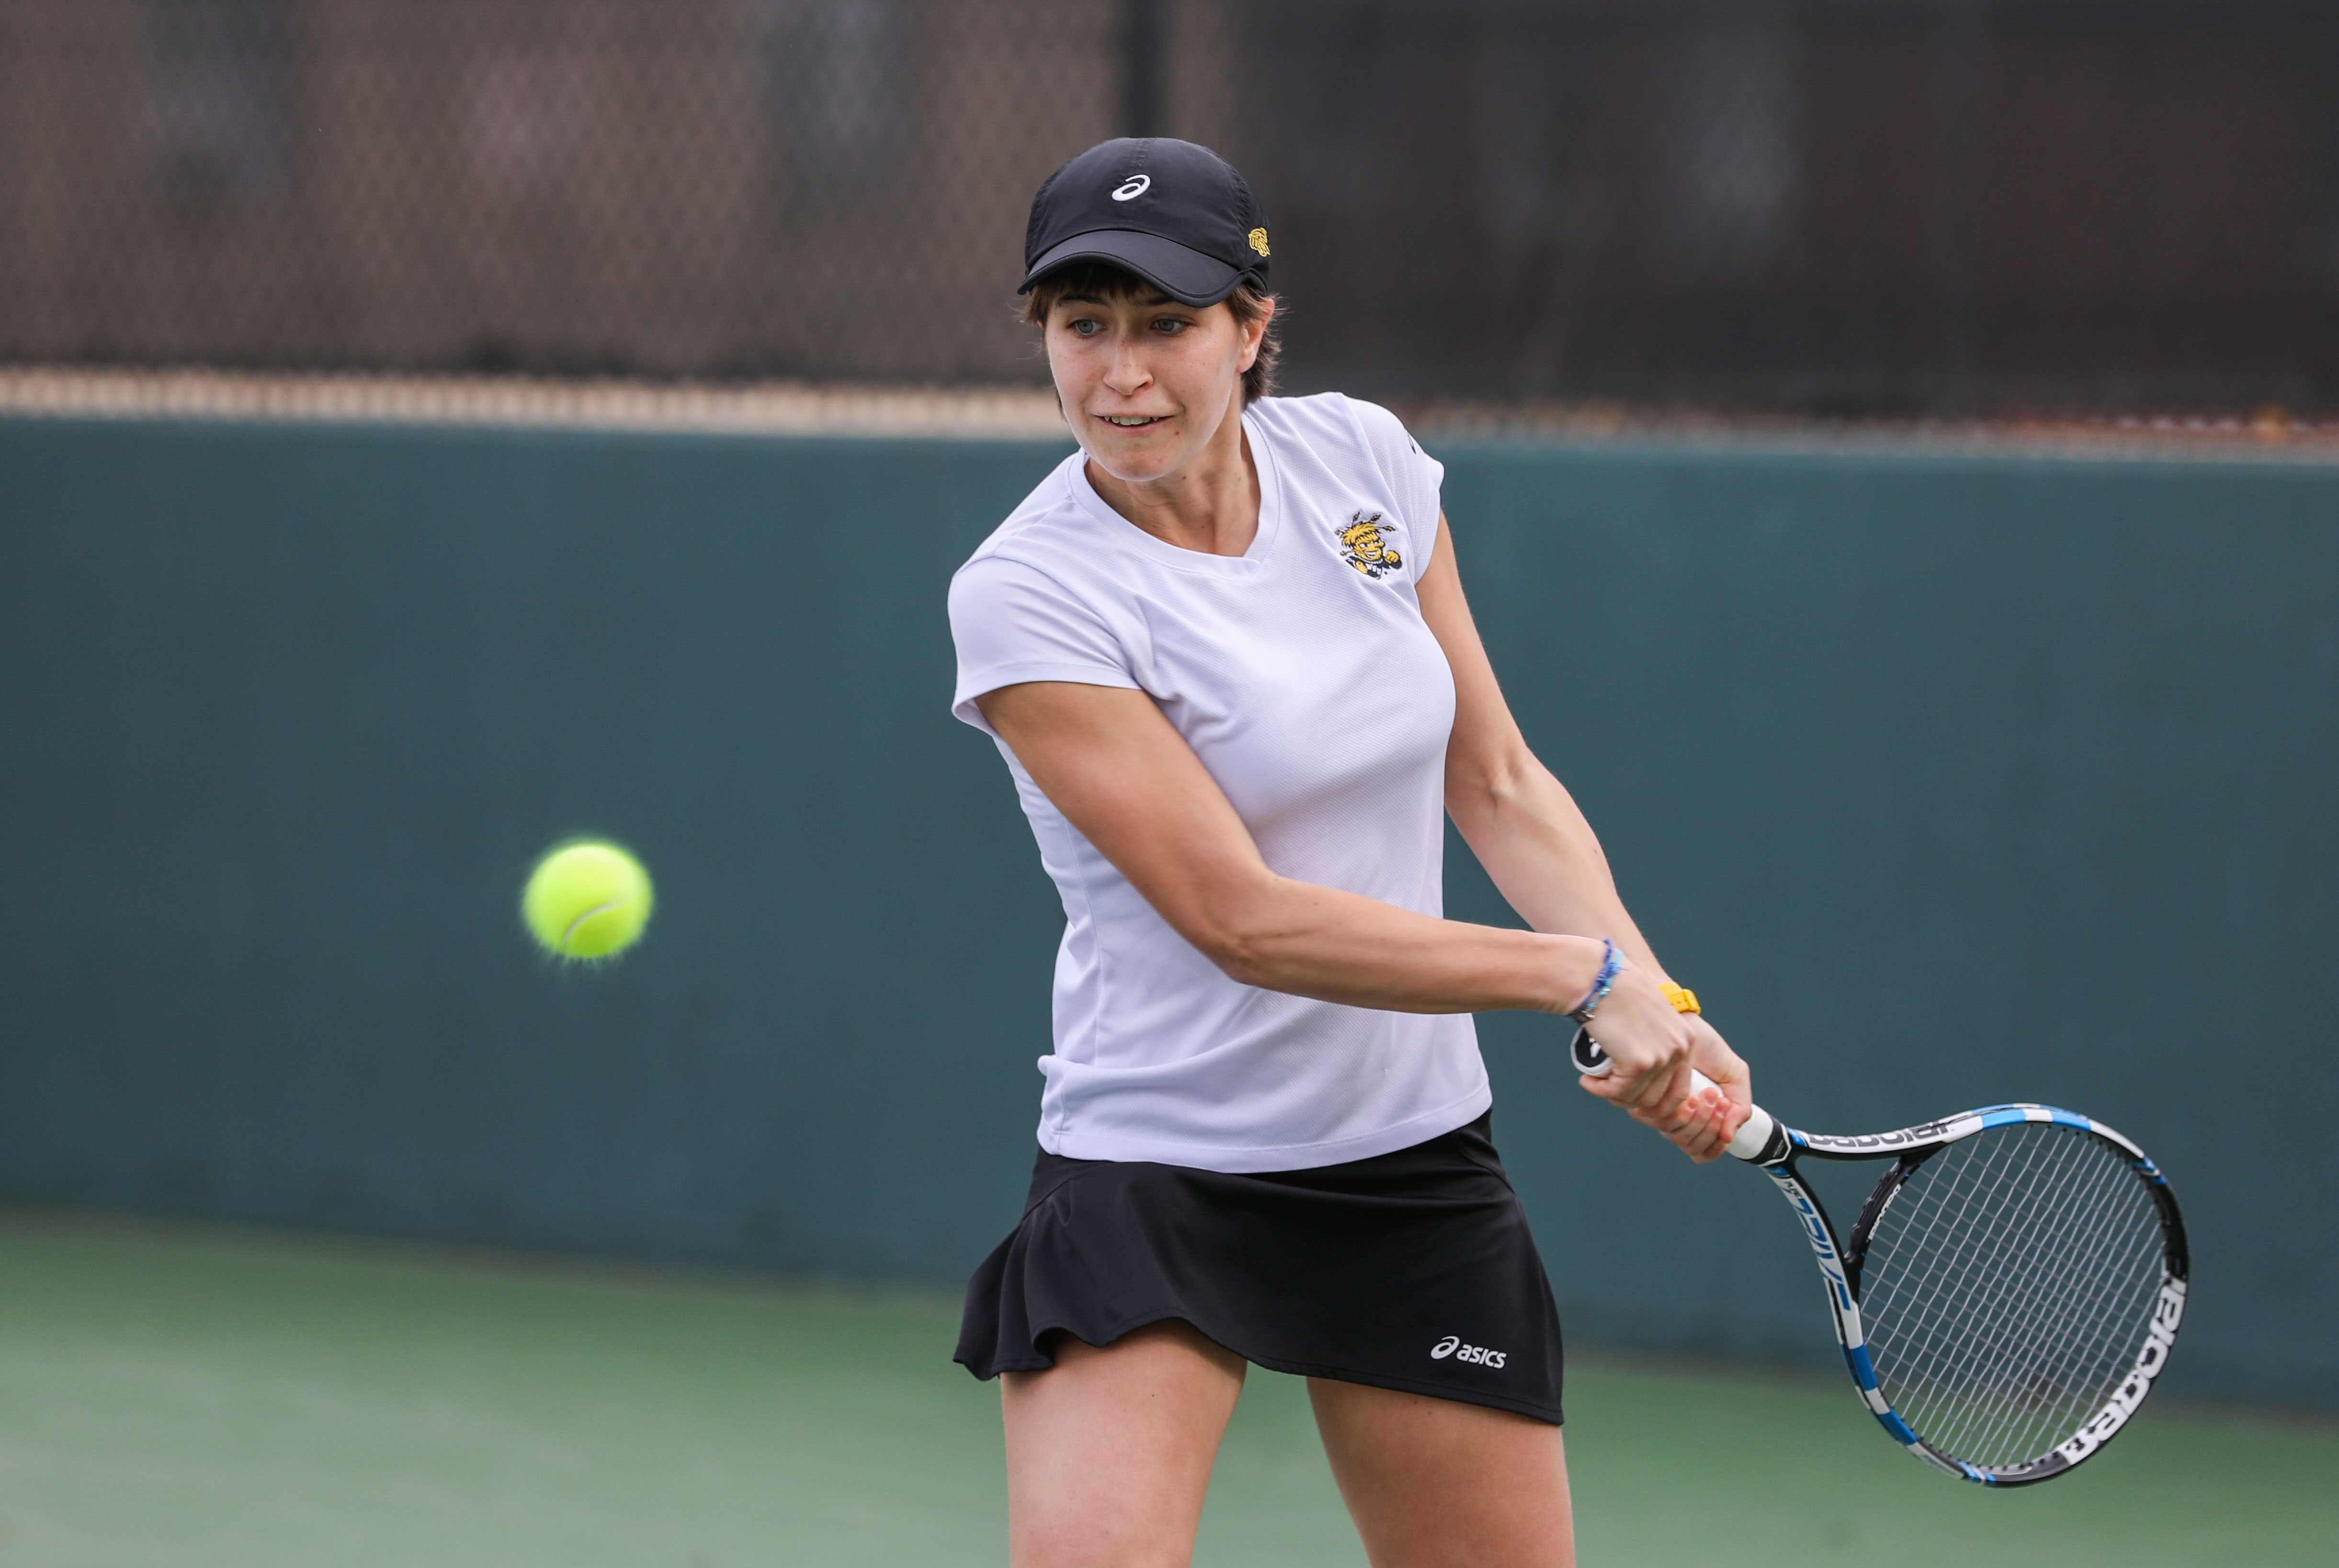 Wichita State Junior Guilia Guidetti takes a backhand swing in a singles match Friday against Kansas. The Shockers lost to the Jayhawks 2-5, ending Wichita State's 34-match home win streak. (Feb. 17, 2017)